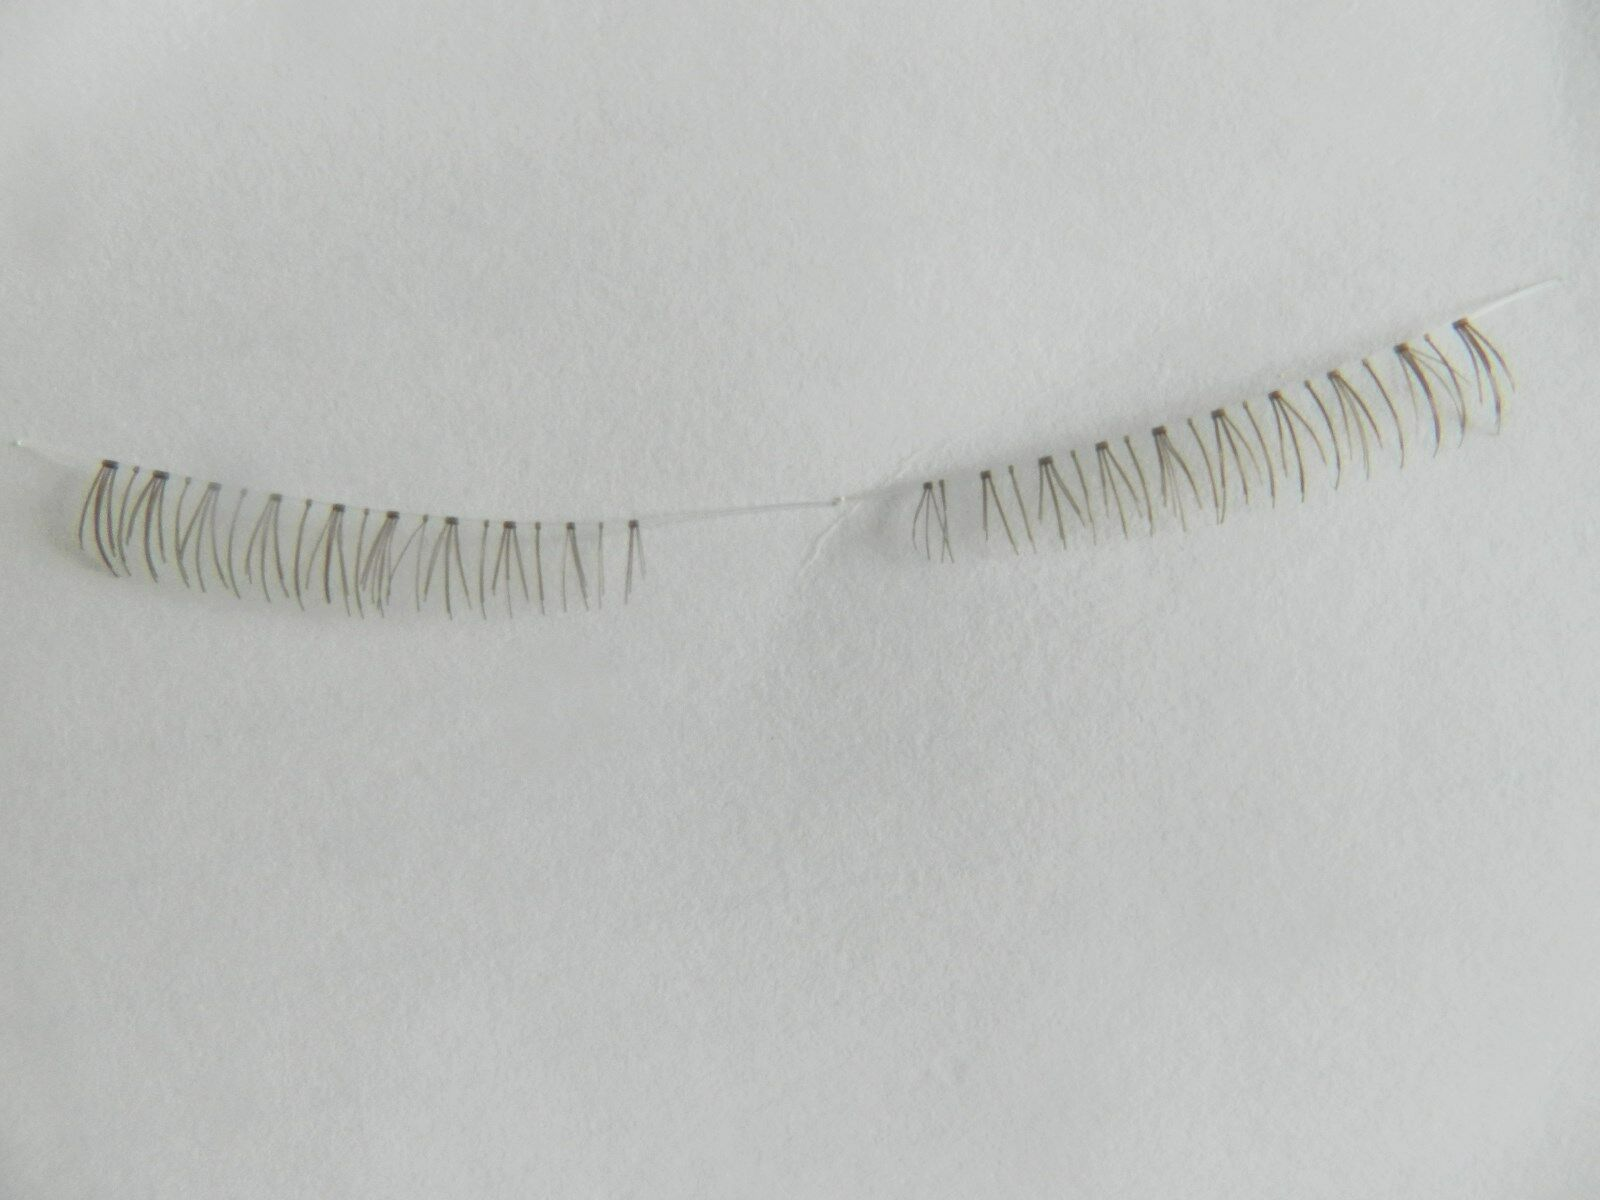 Reborn Wispy Bottom Eyelashes Brown For Reborn Baby Dolls <3!!.Priced to Sell